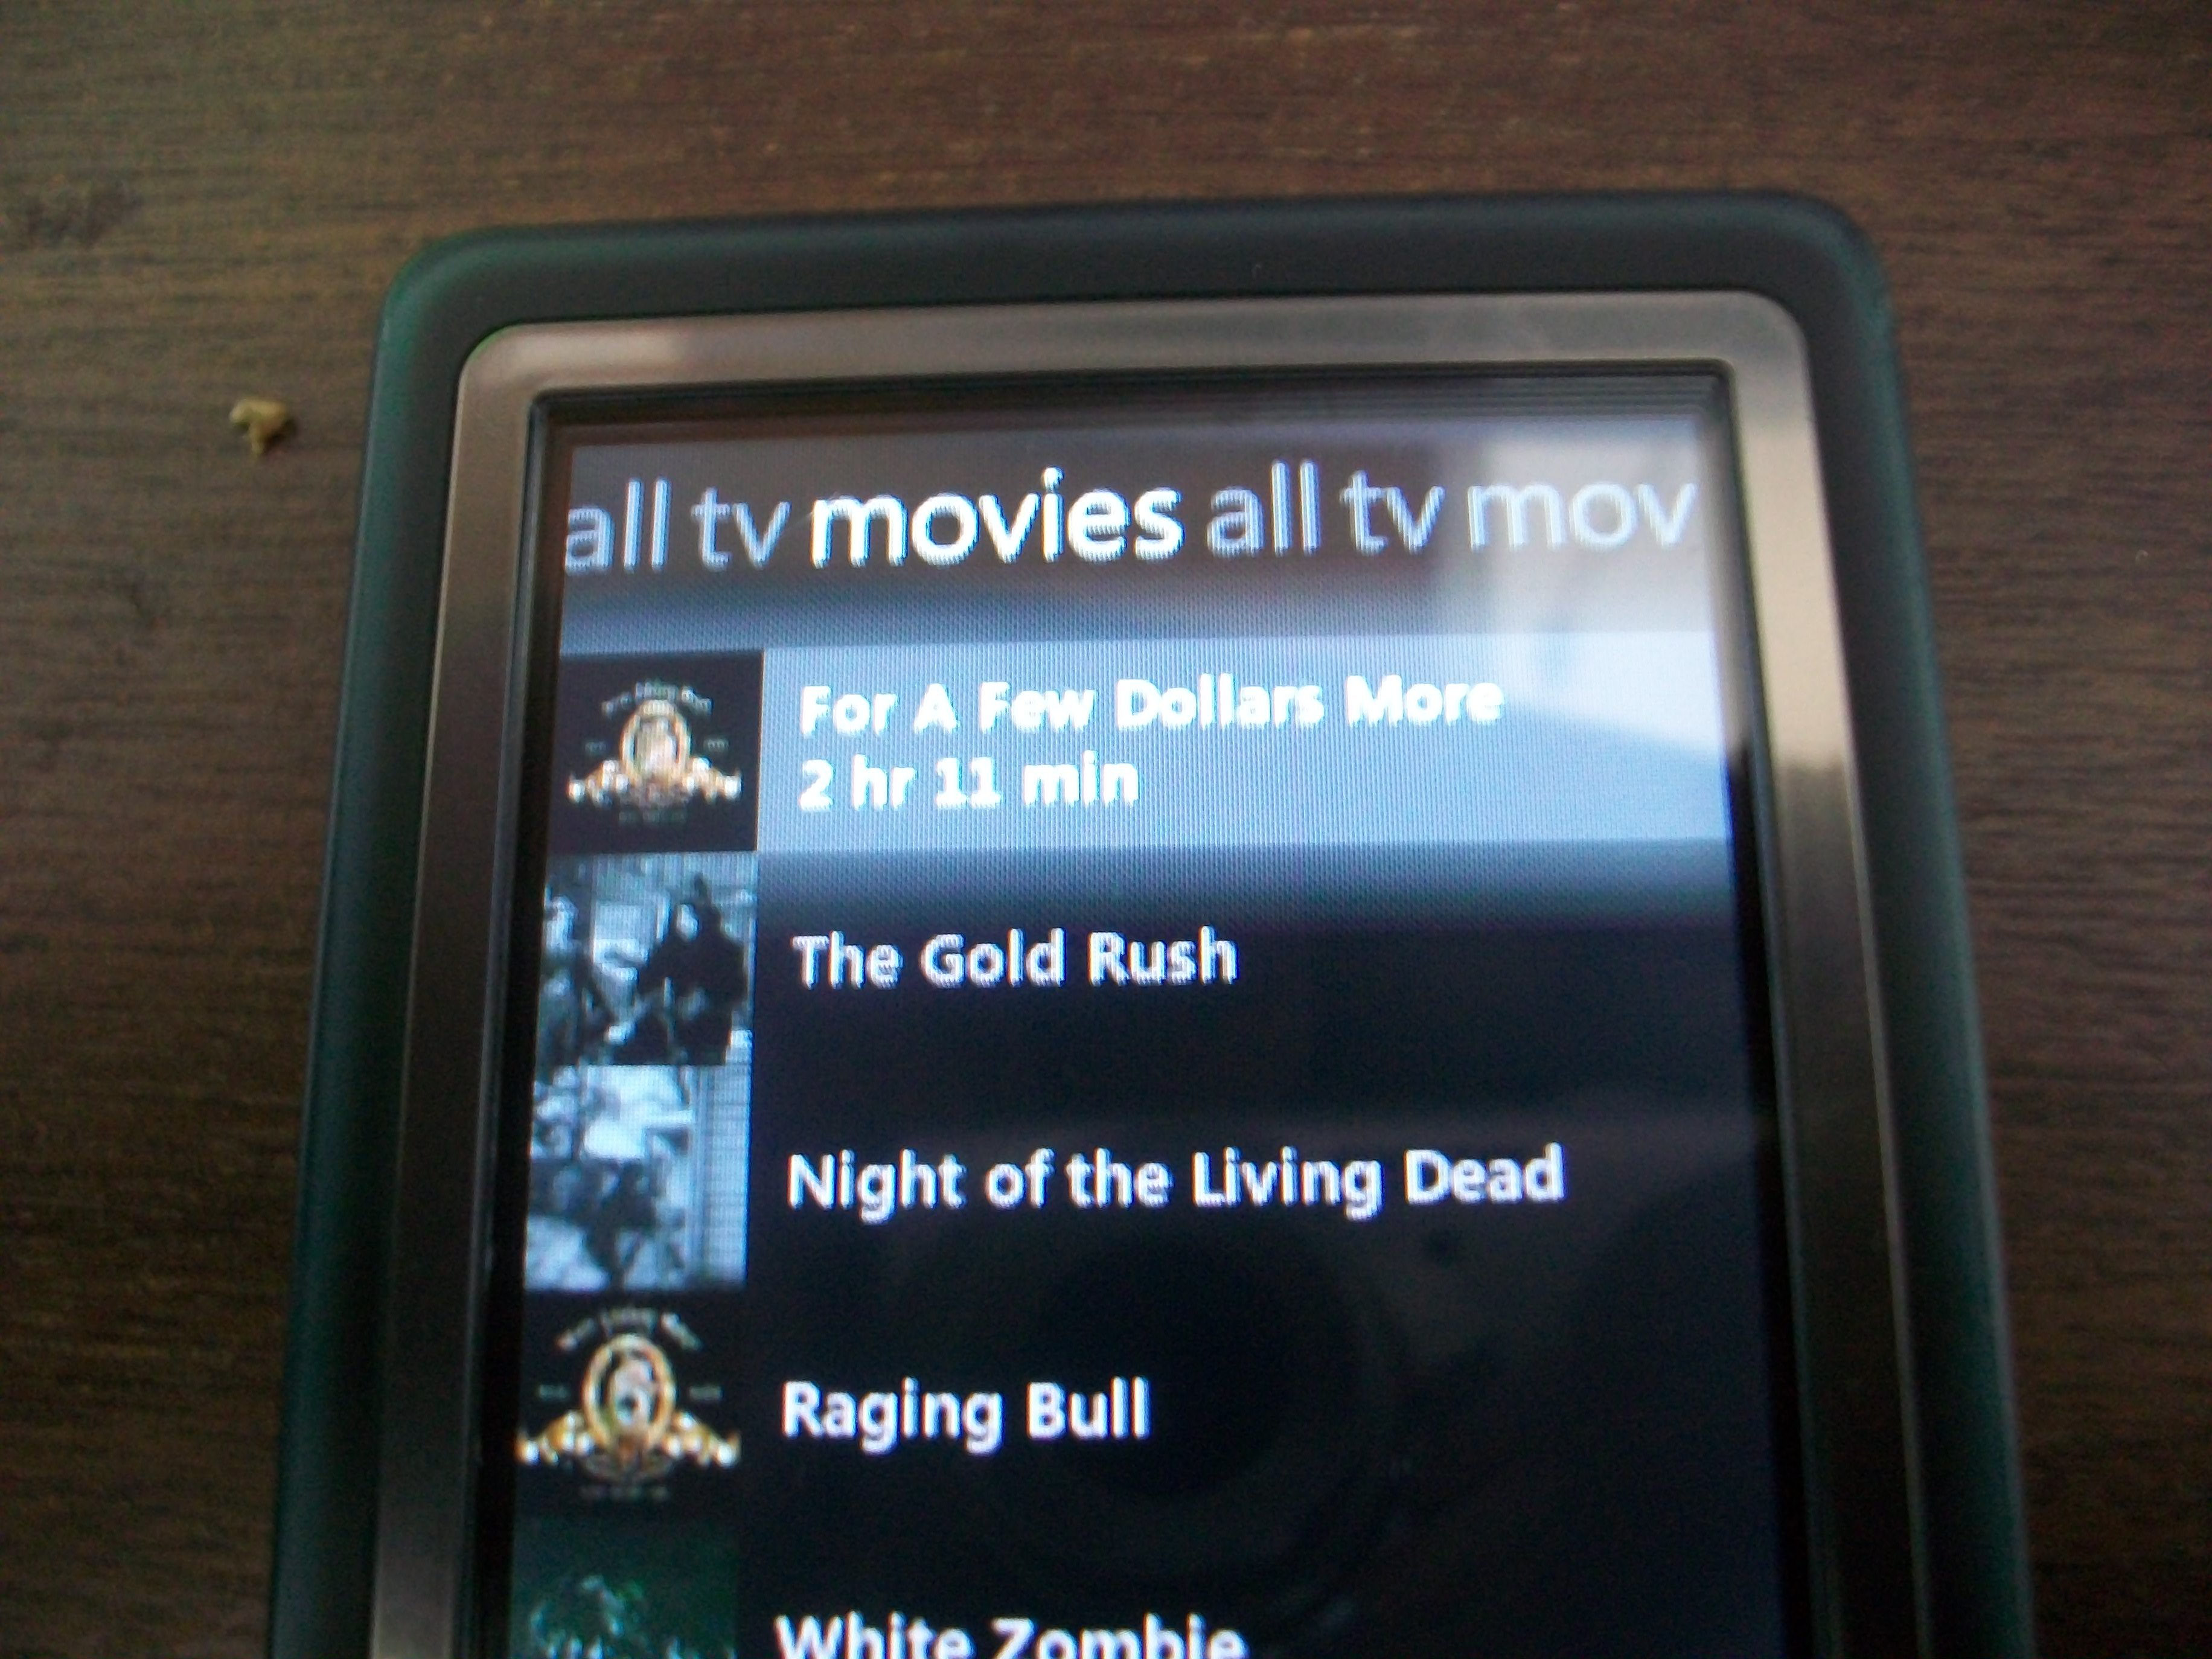 Add DVDs to your Zune